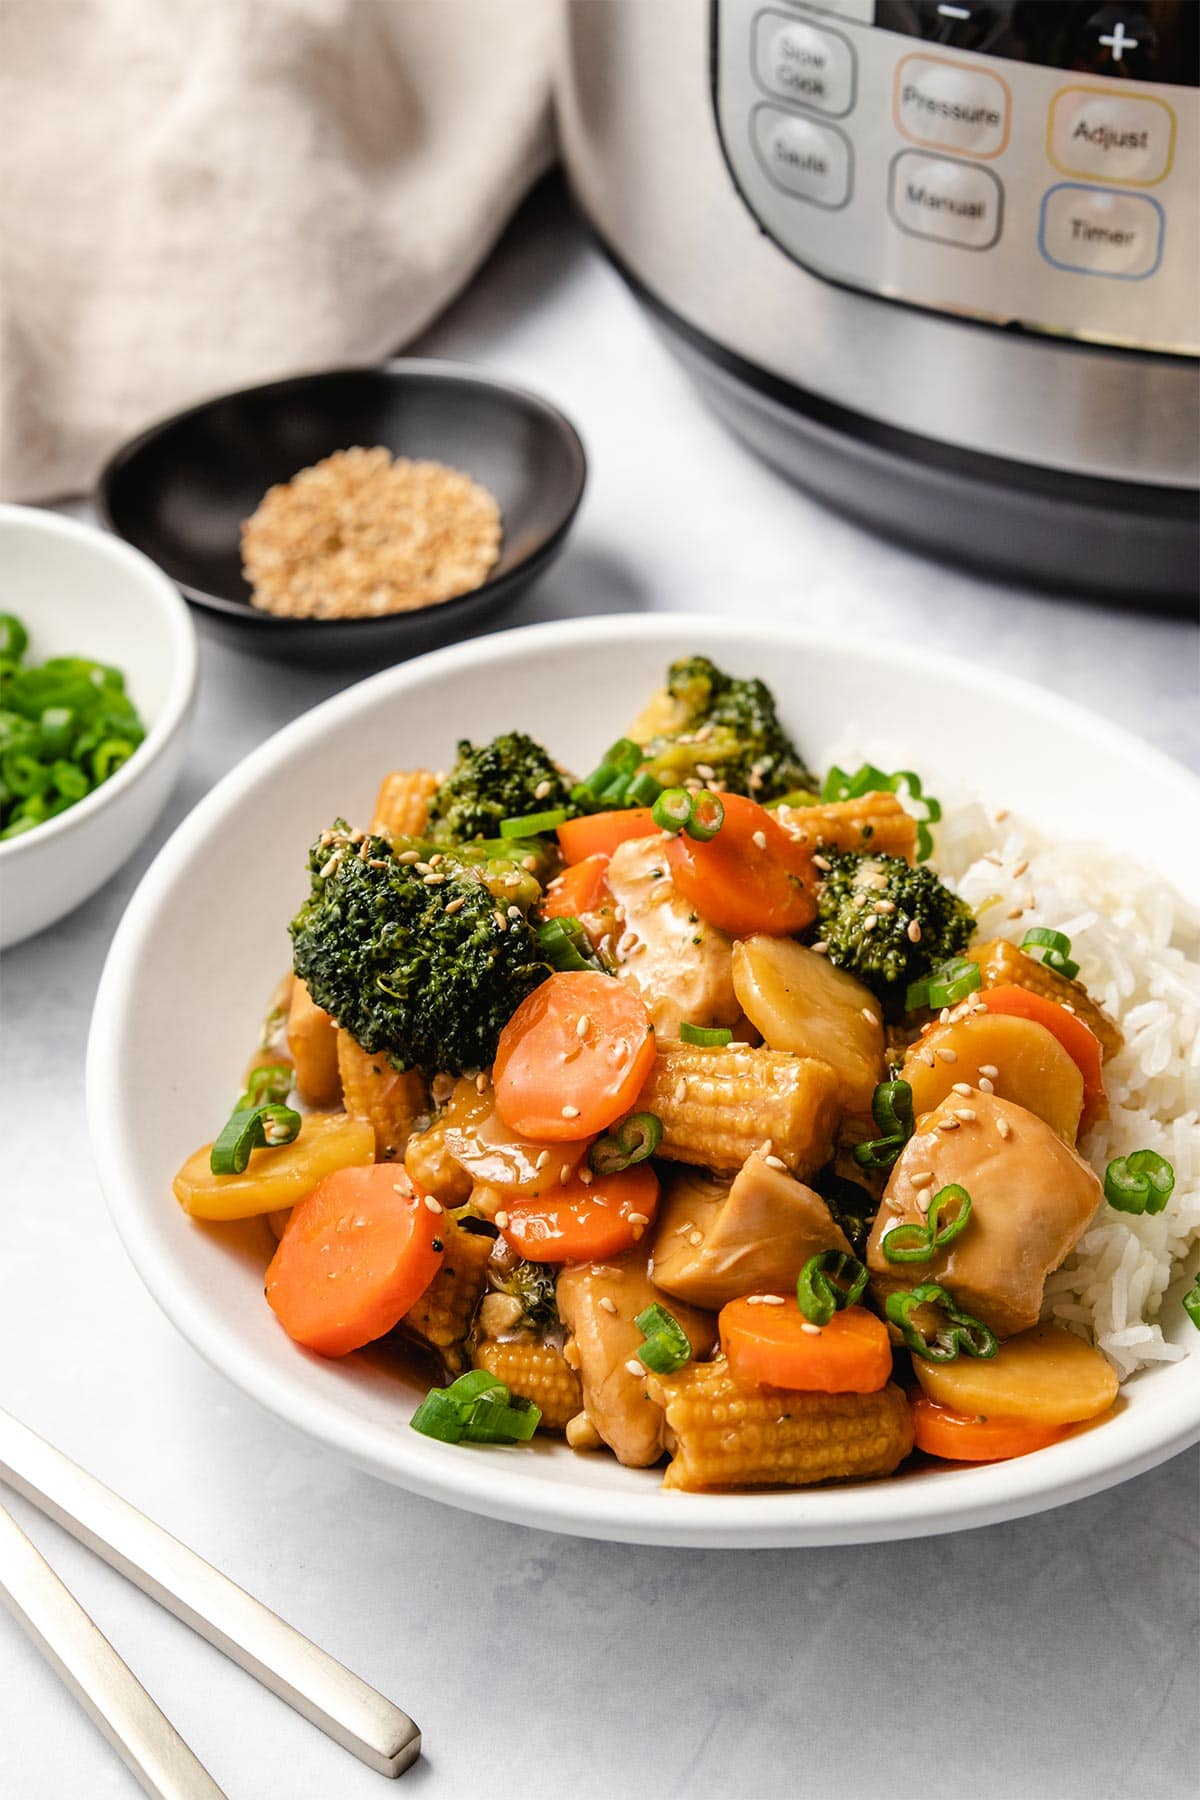 Instant Pot Chicken Stir Fry served with rice on a white plate surround by bowls of garnish and an Instant Pot.